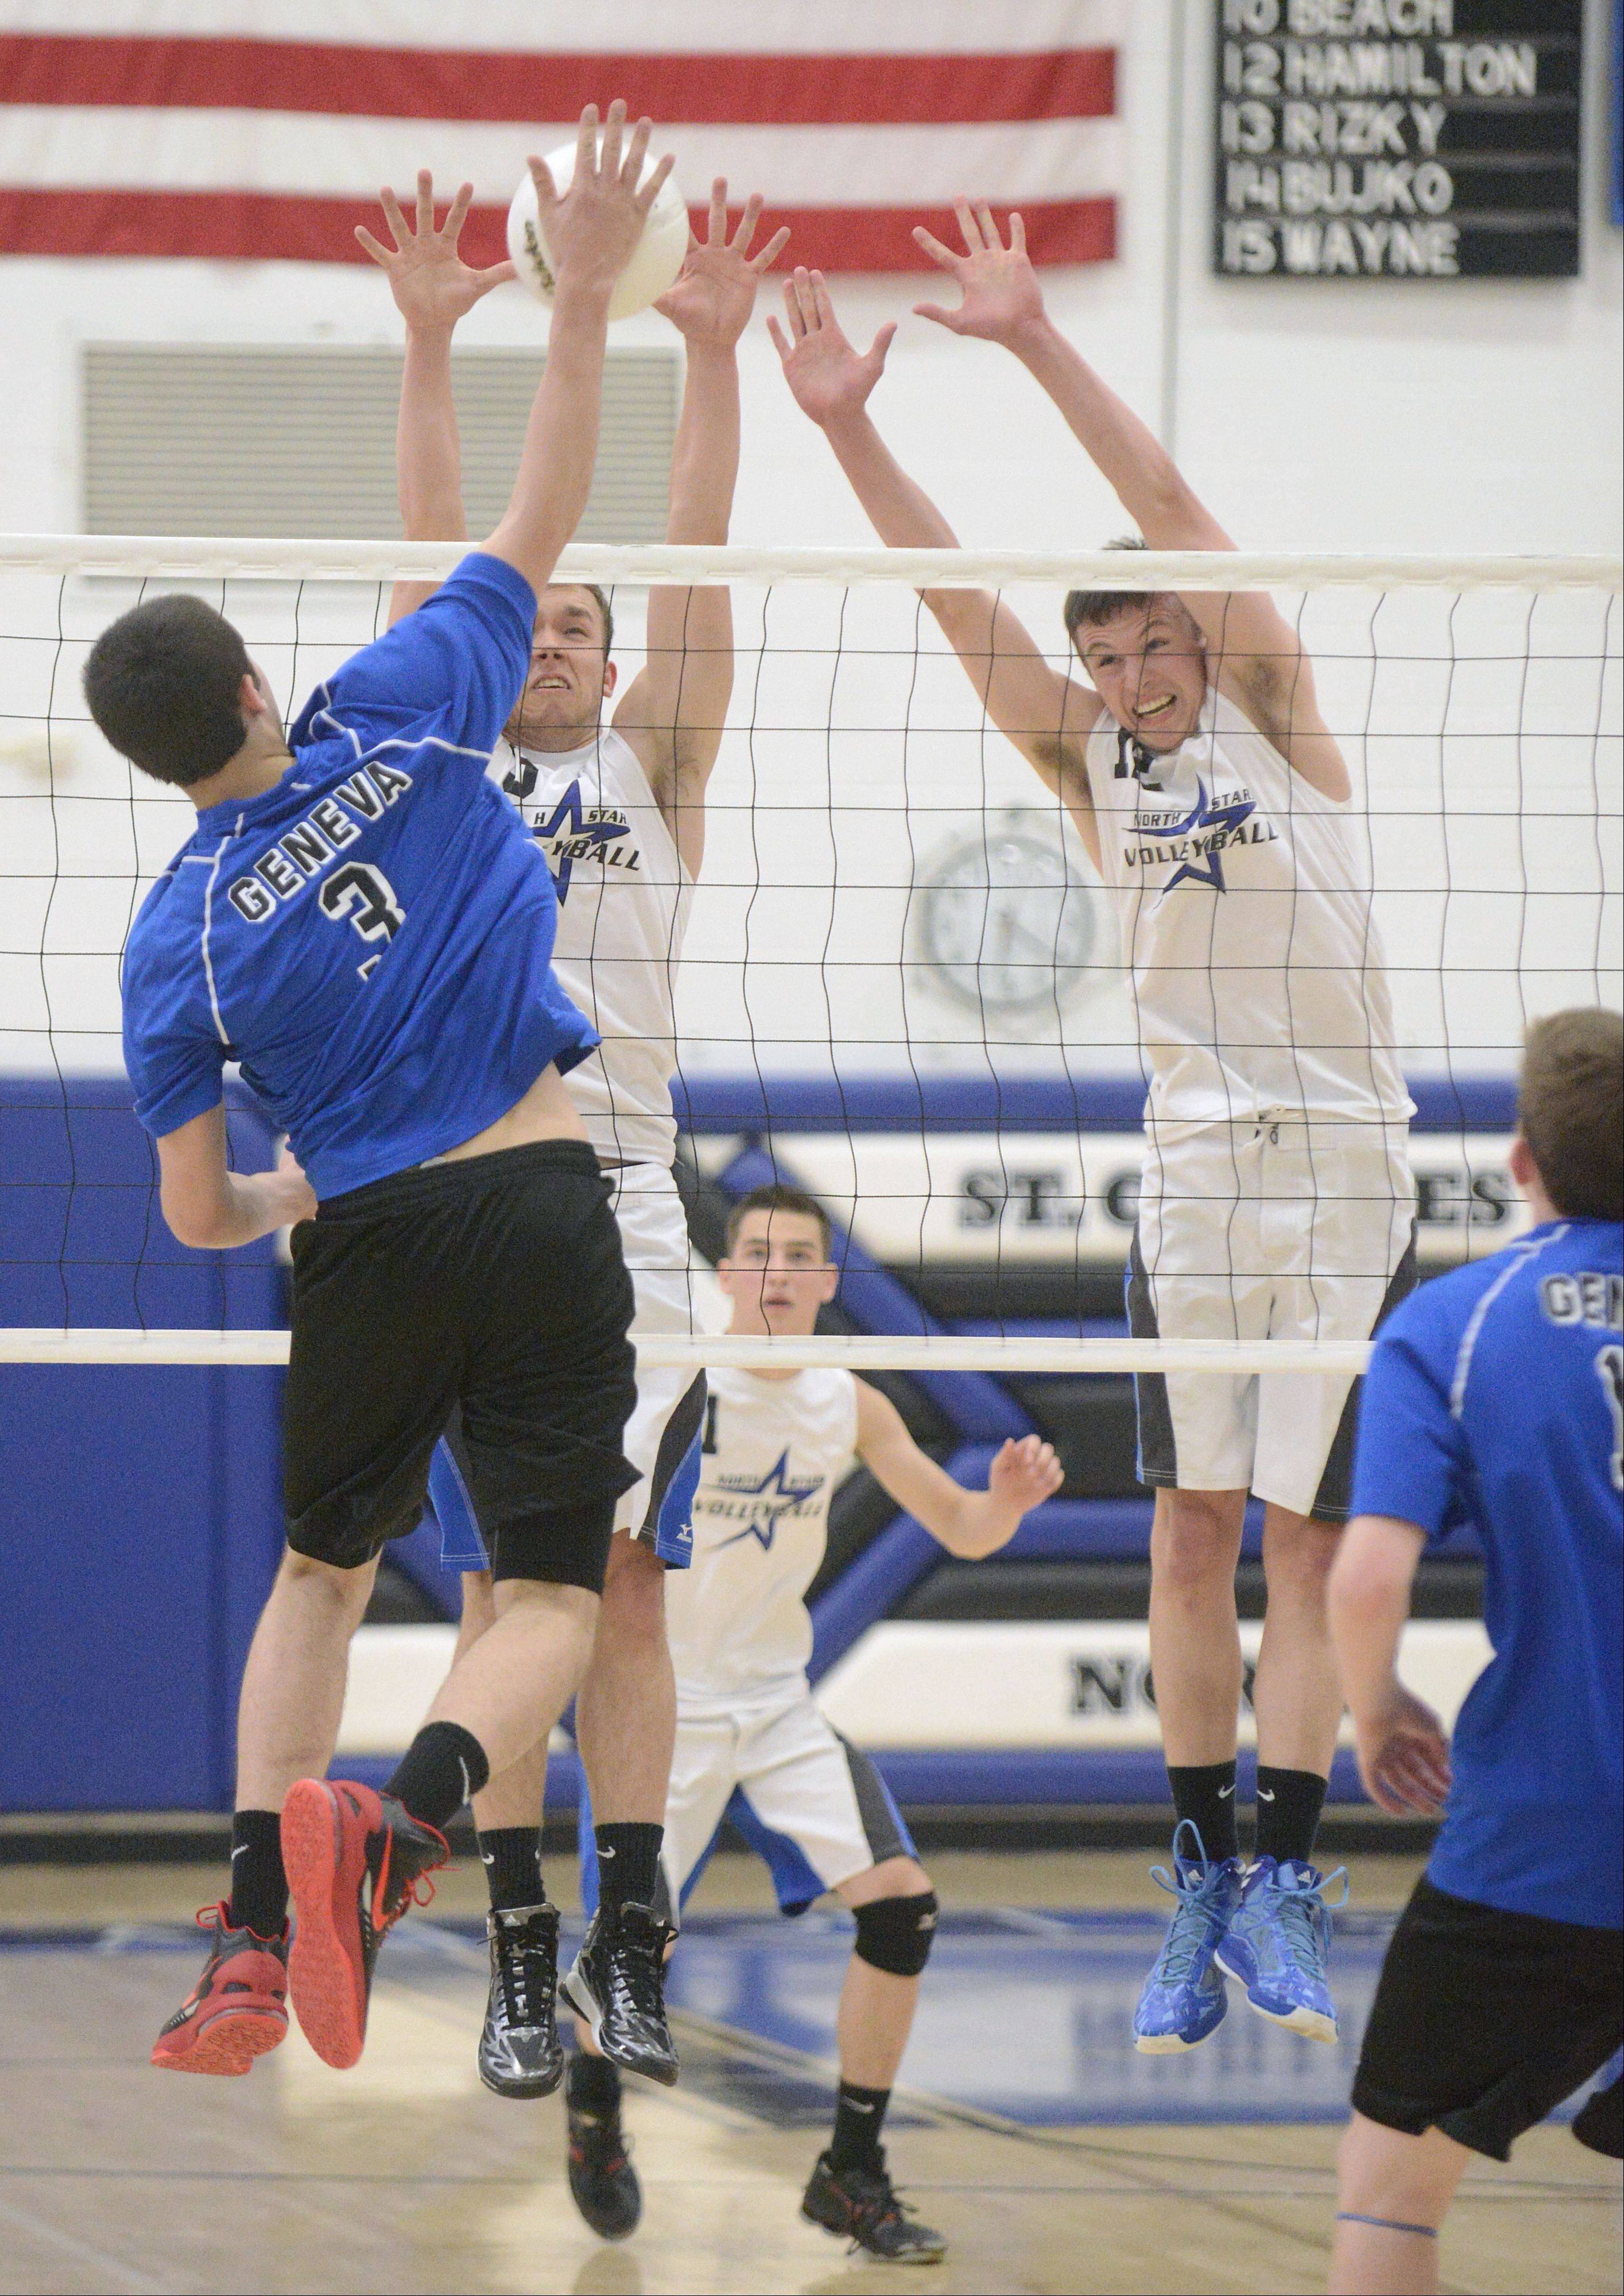 St. Charles North's Pat Misiewicz and Jake Hamilton block a spike by Geneva's Chris Parilli in the second match on Tuesday, May 7.